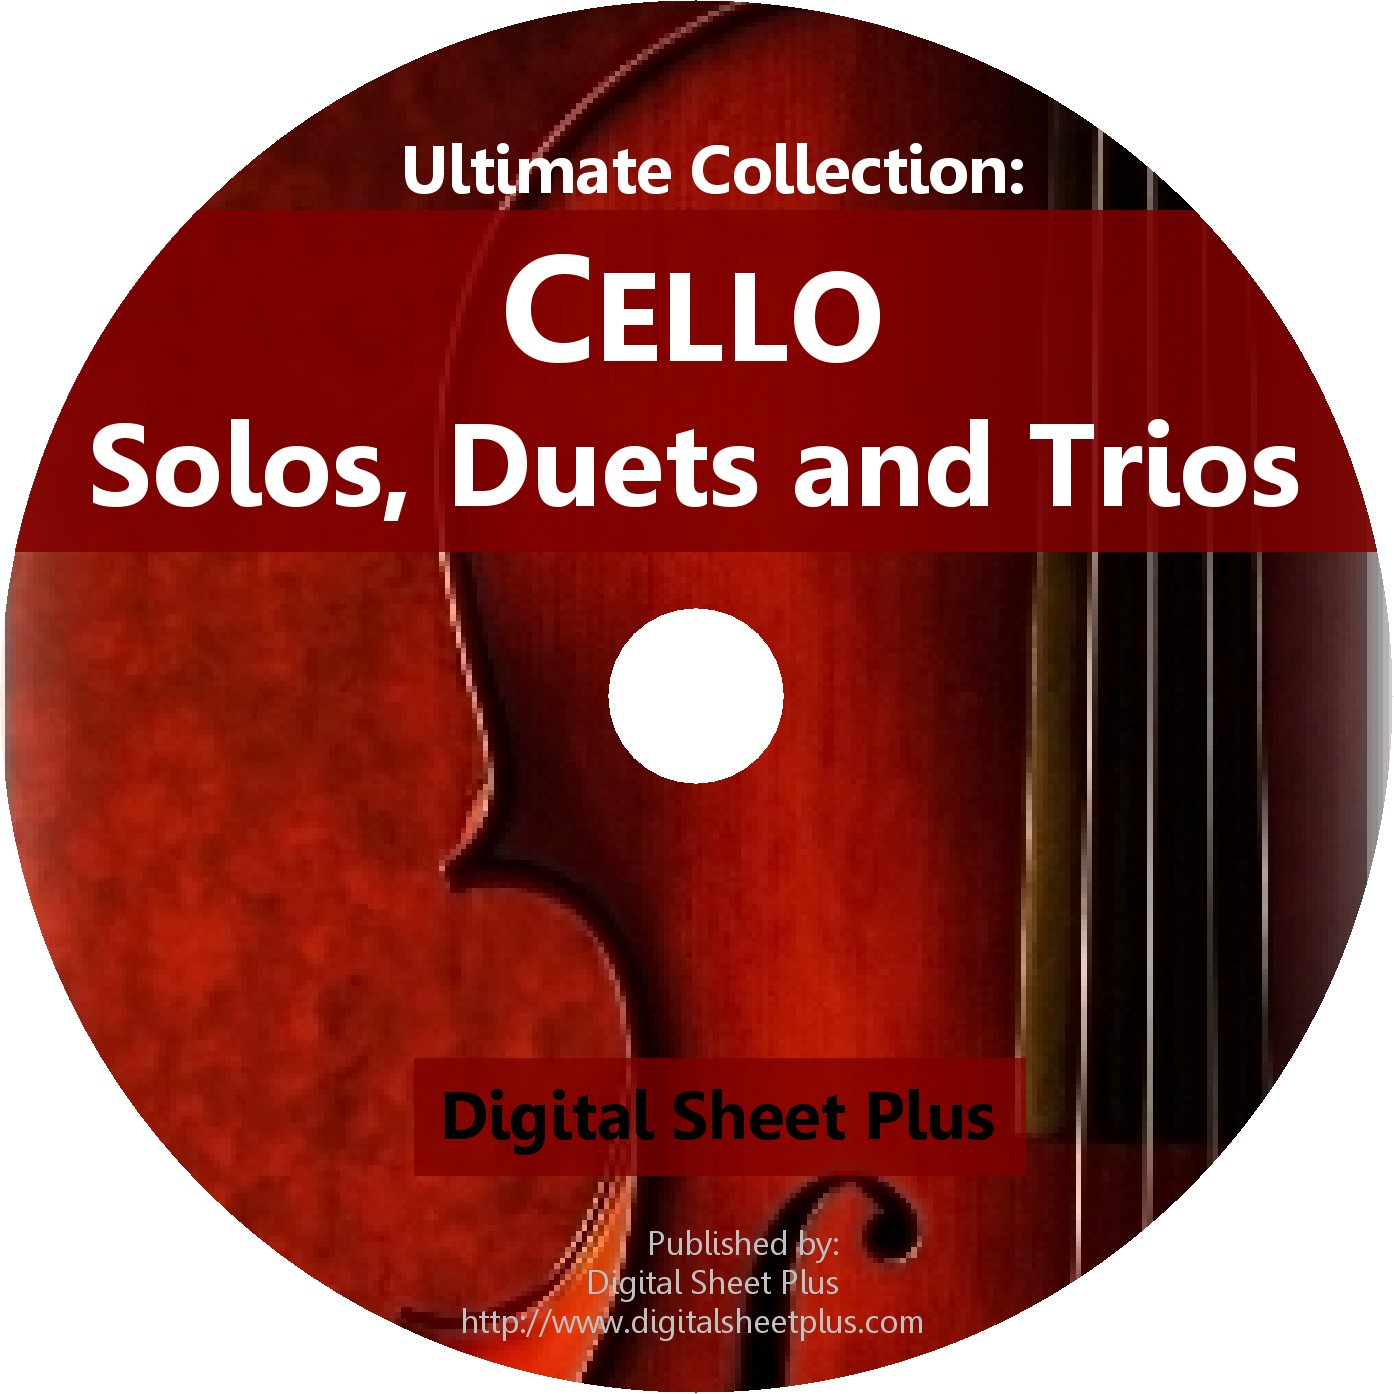 cello_solos_duet_trios_cd_cover.jpg